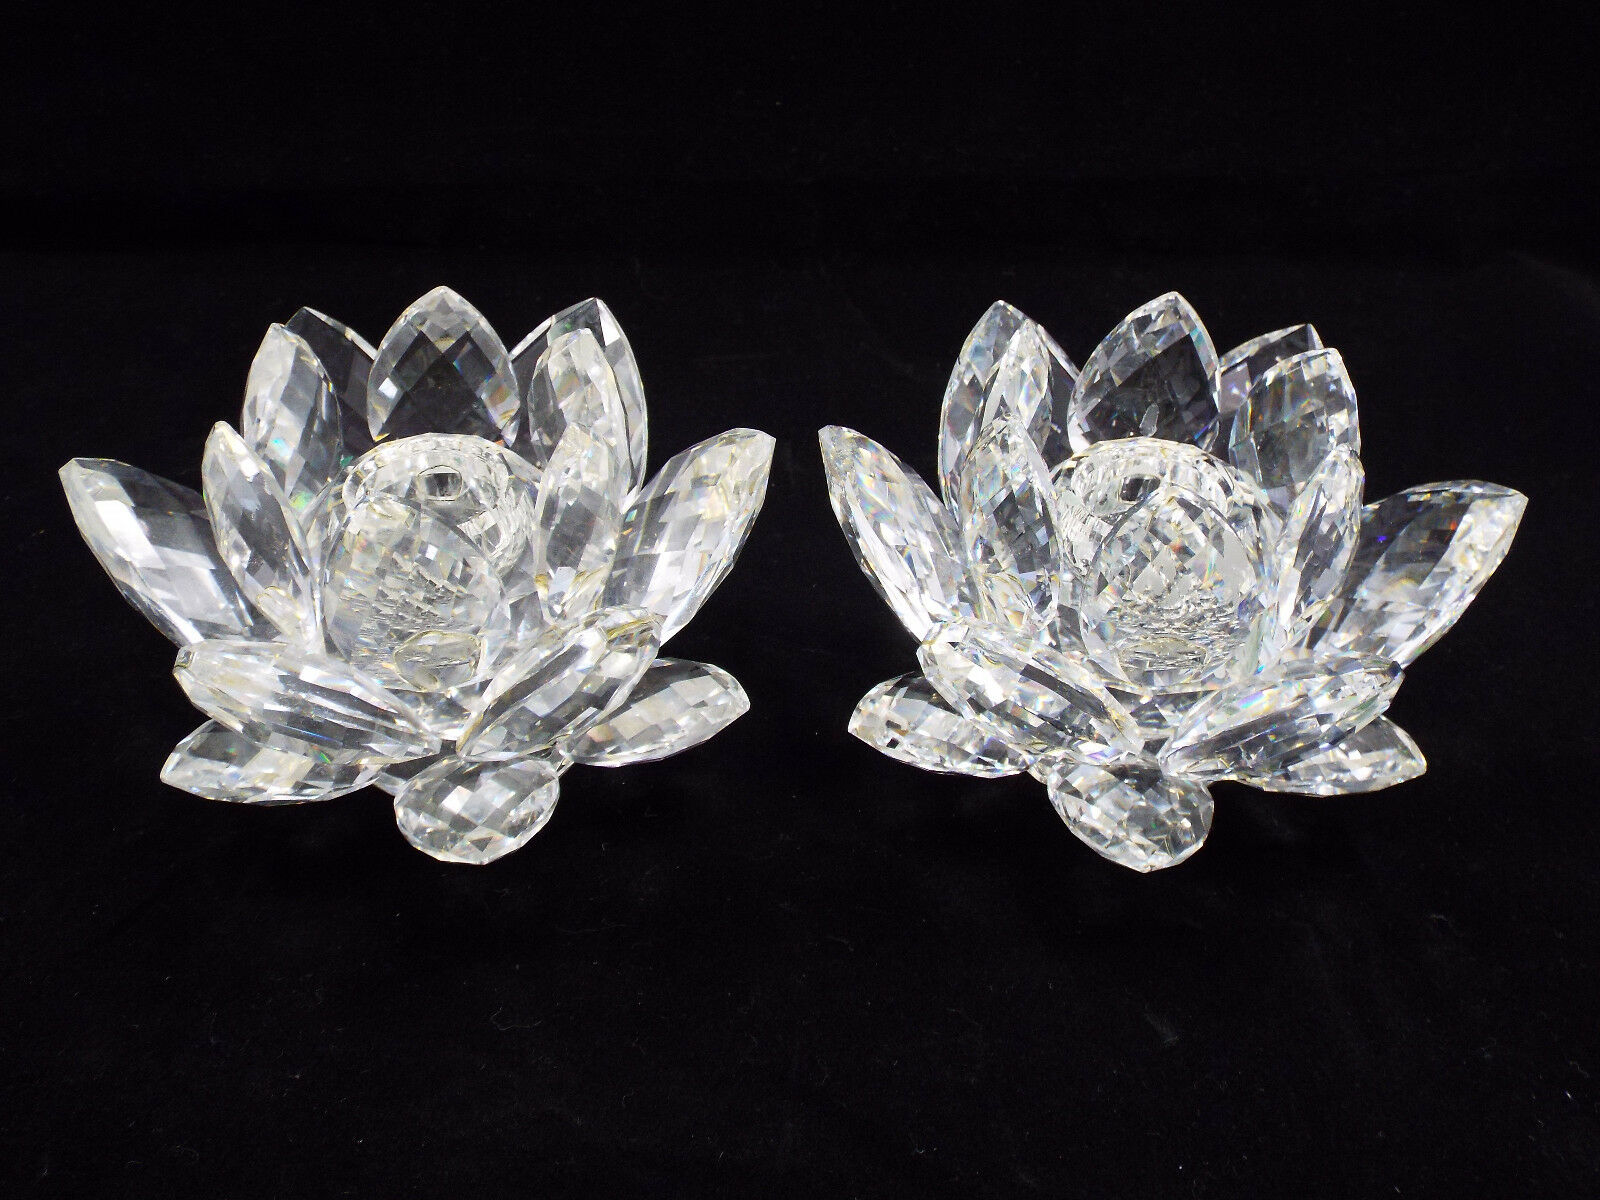 Swarovski Crystal Lotus Flower Candle Holders 2 Pc 17500 Picclick